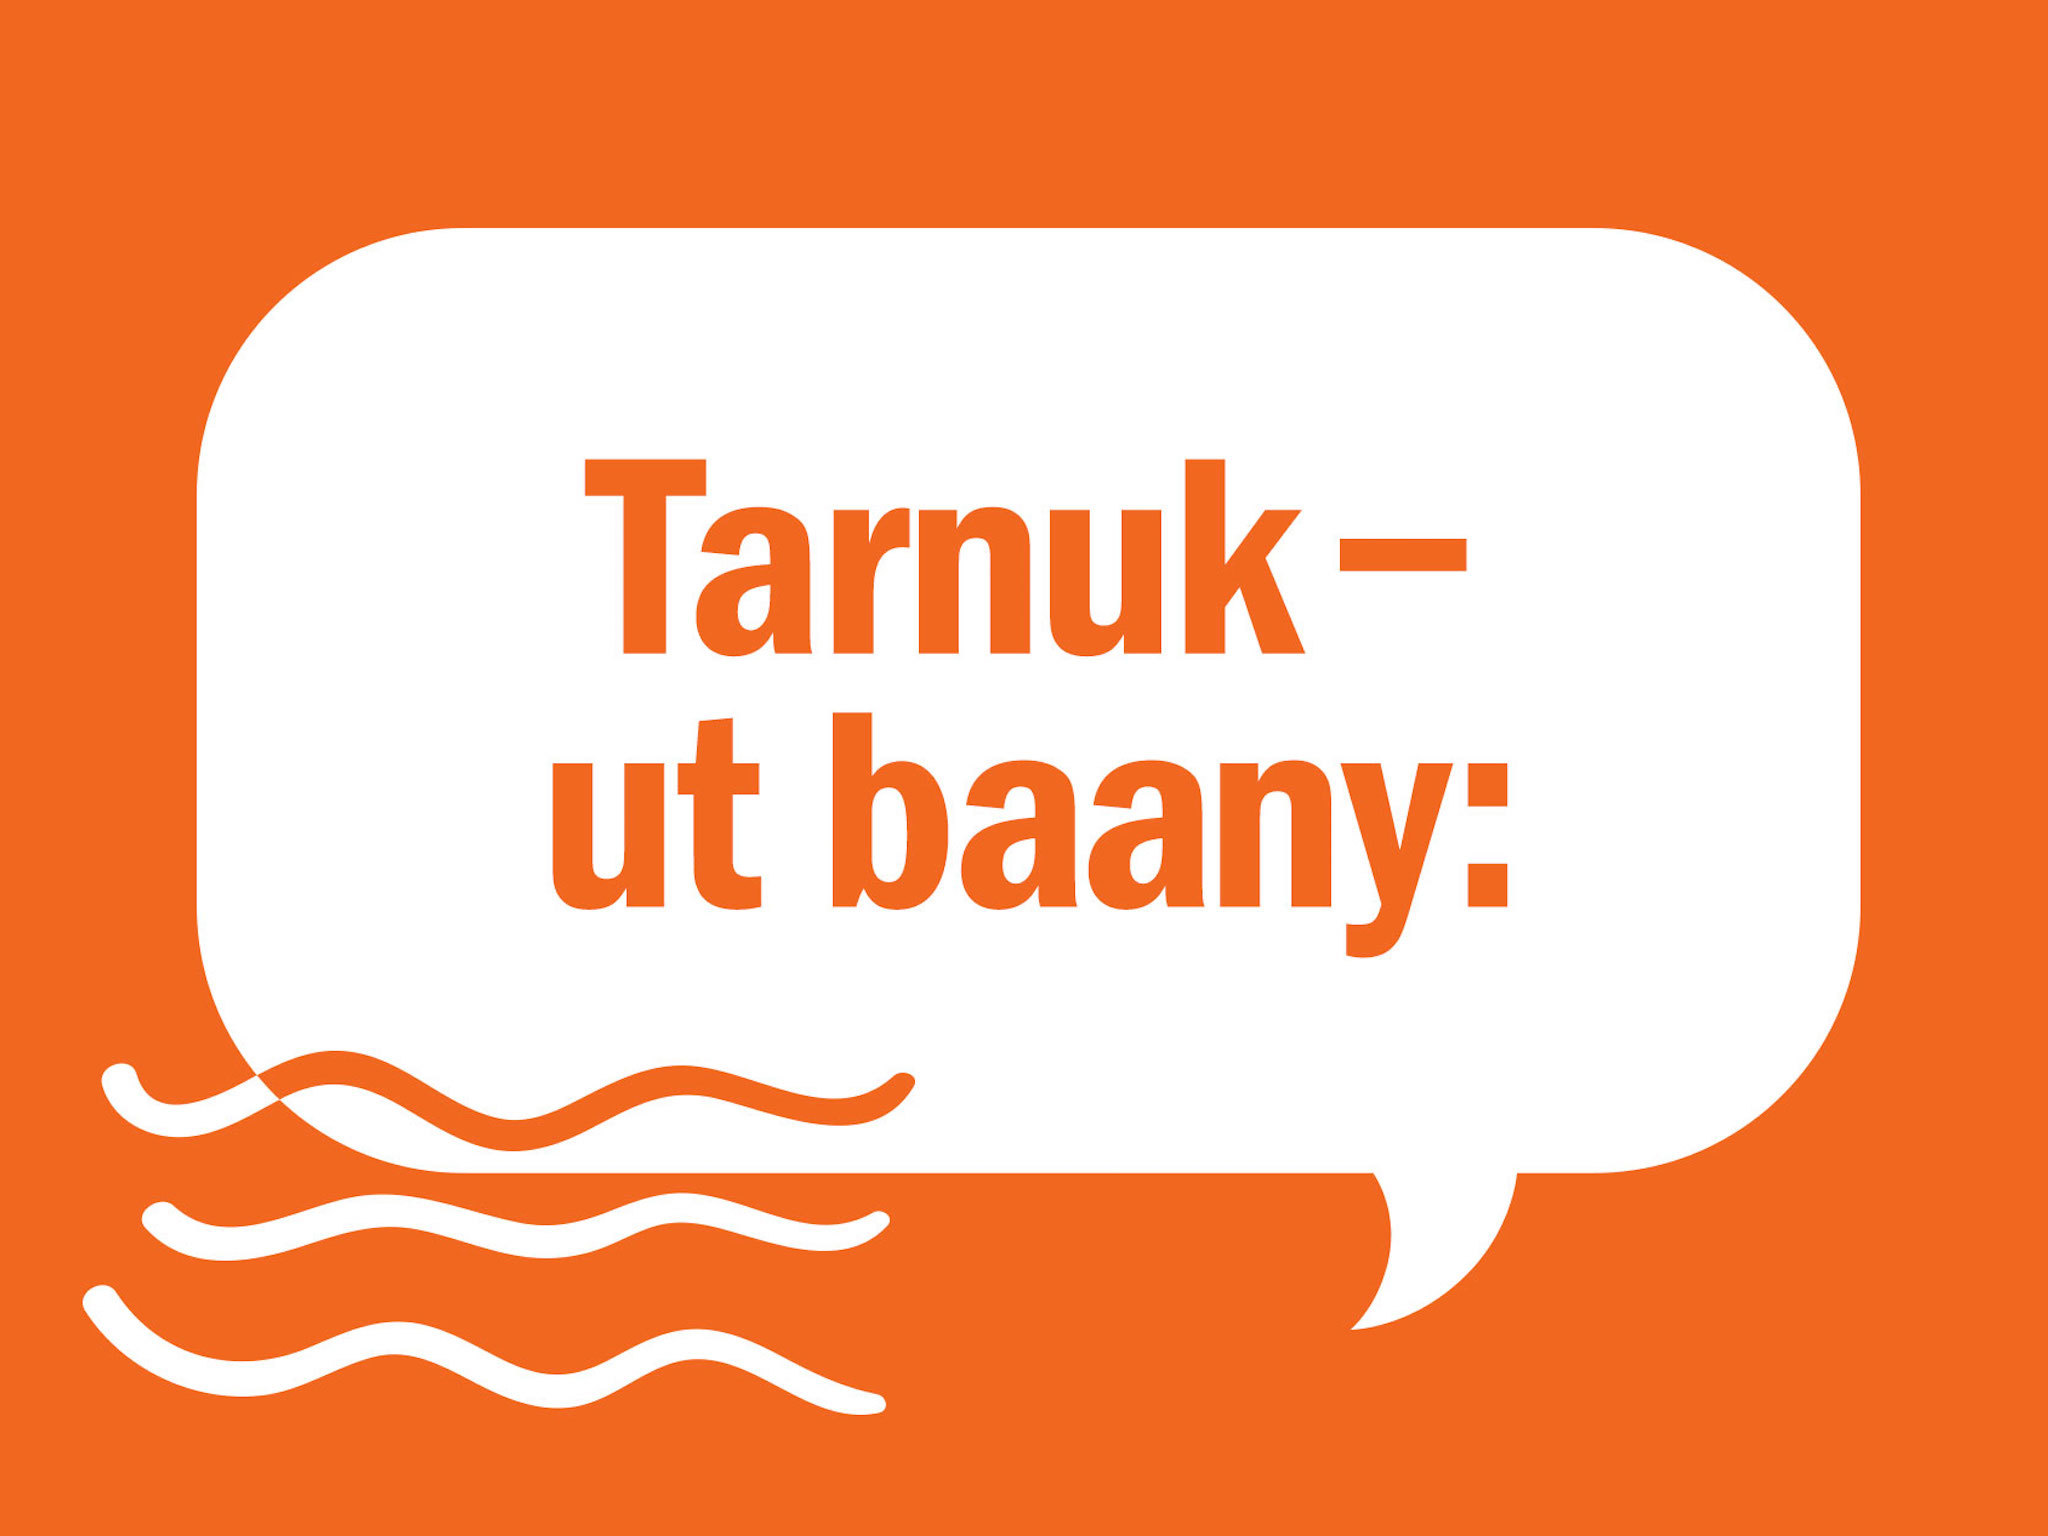 Boon Wurrung words: Tarnuk-ut baany